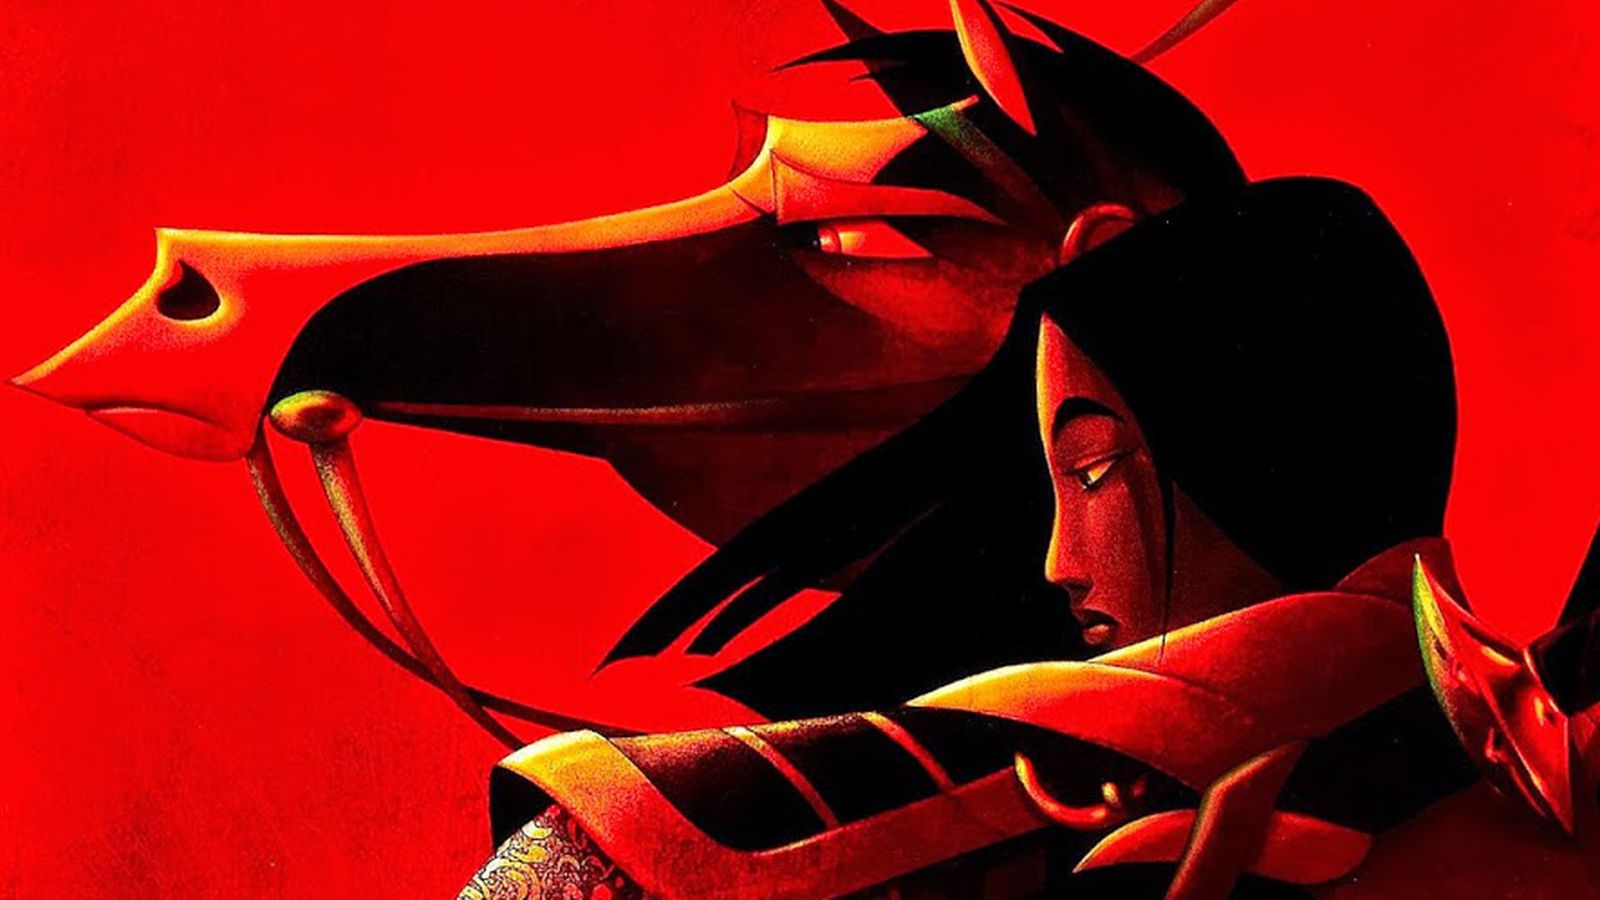 Wallpaper For Iphone X Live Mulan Leak Shows Disney Wasn T Prepared To Bring The 90s